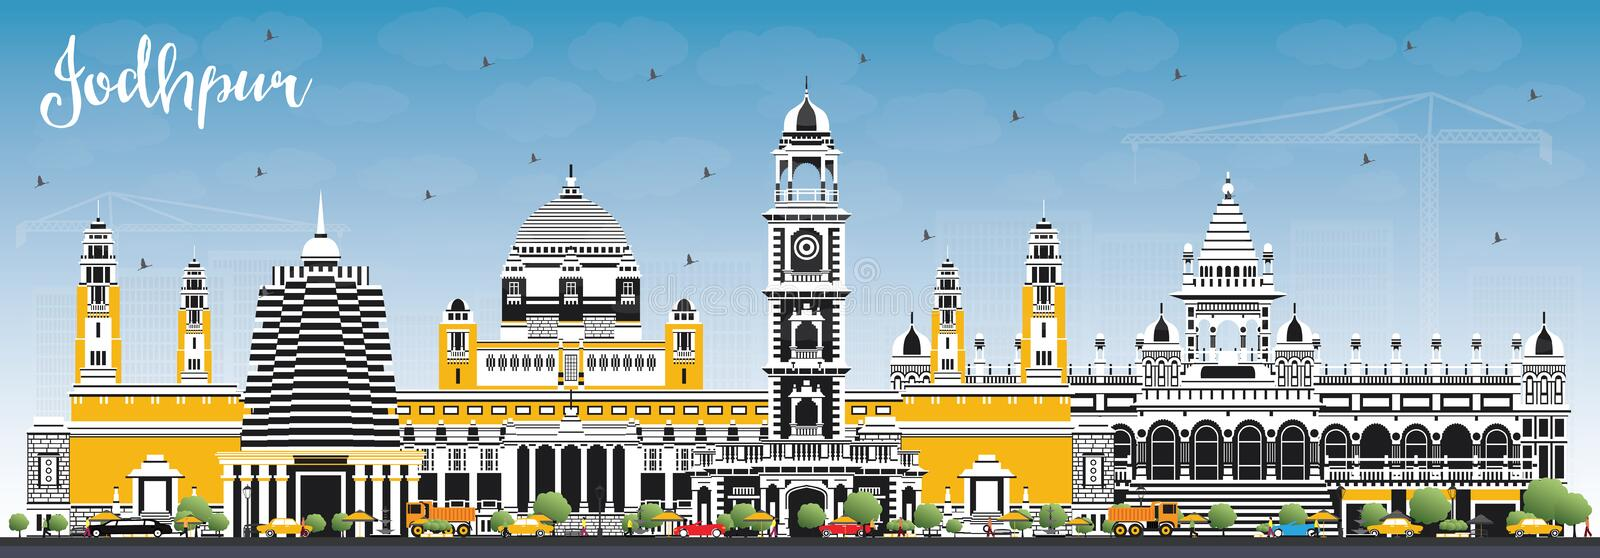 Jodhpur India City Skyline with Color Buildings and Blue Sky. Vector Illustration. Business Travel and Concept with Historic Architecture. Jodhpur Cityscape royalty free illustration